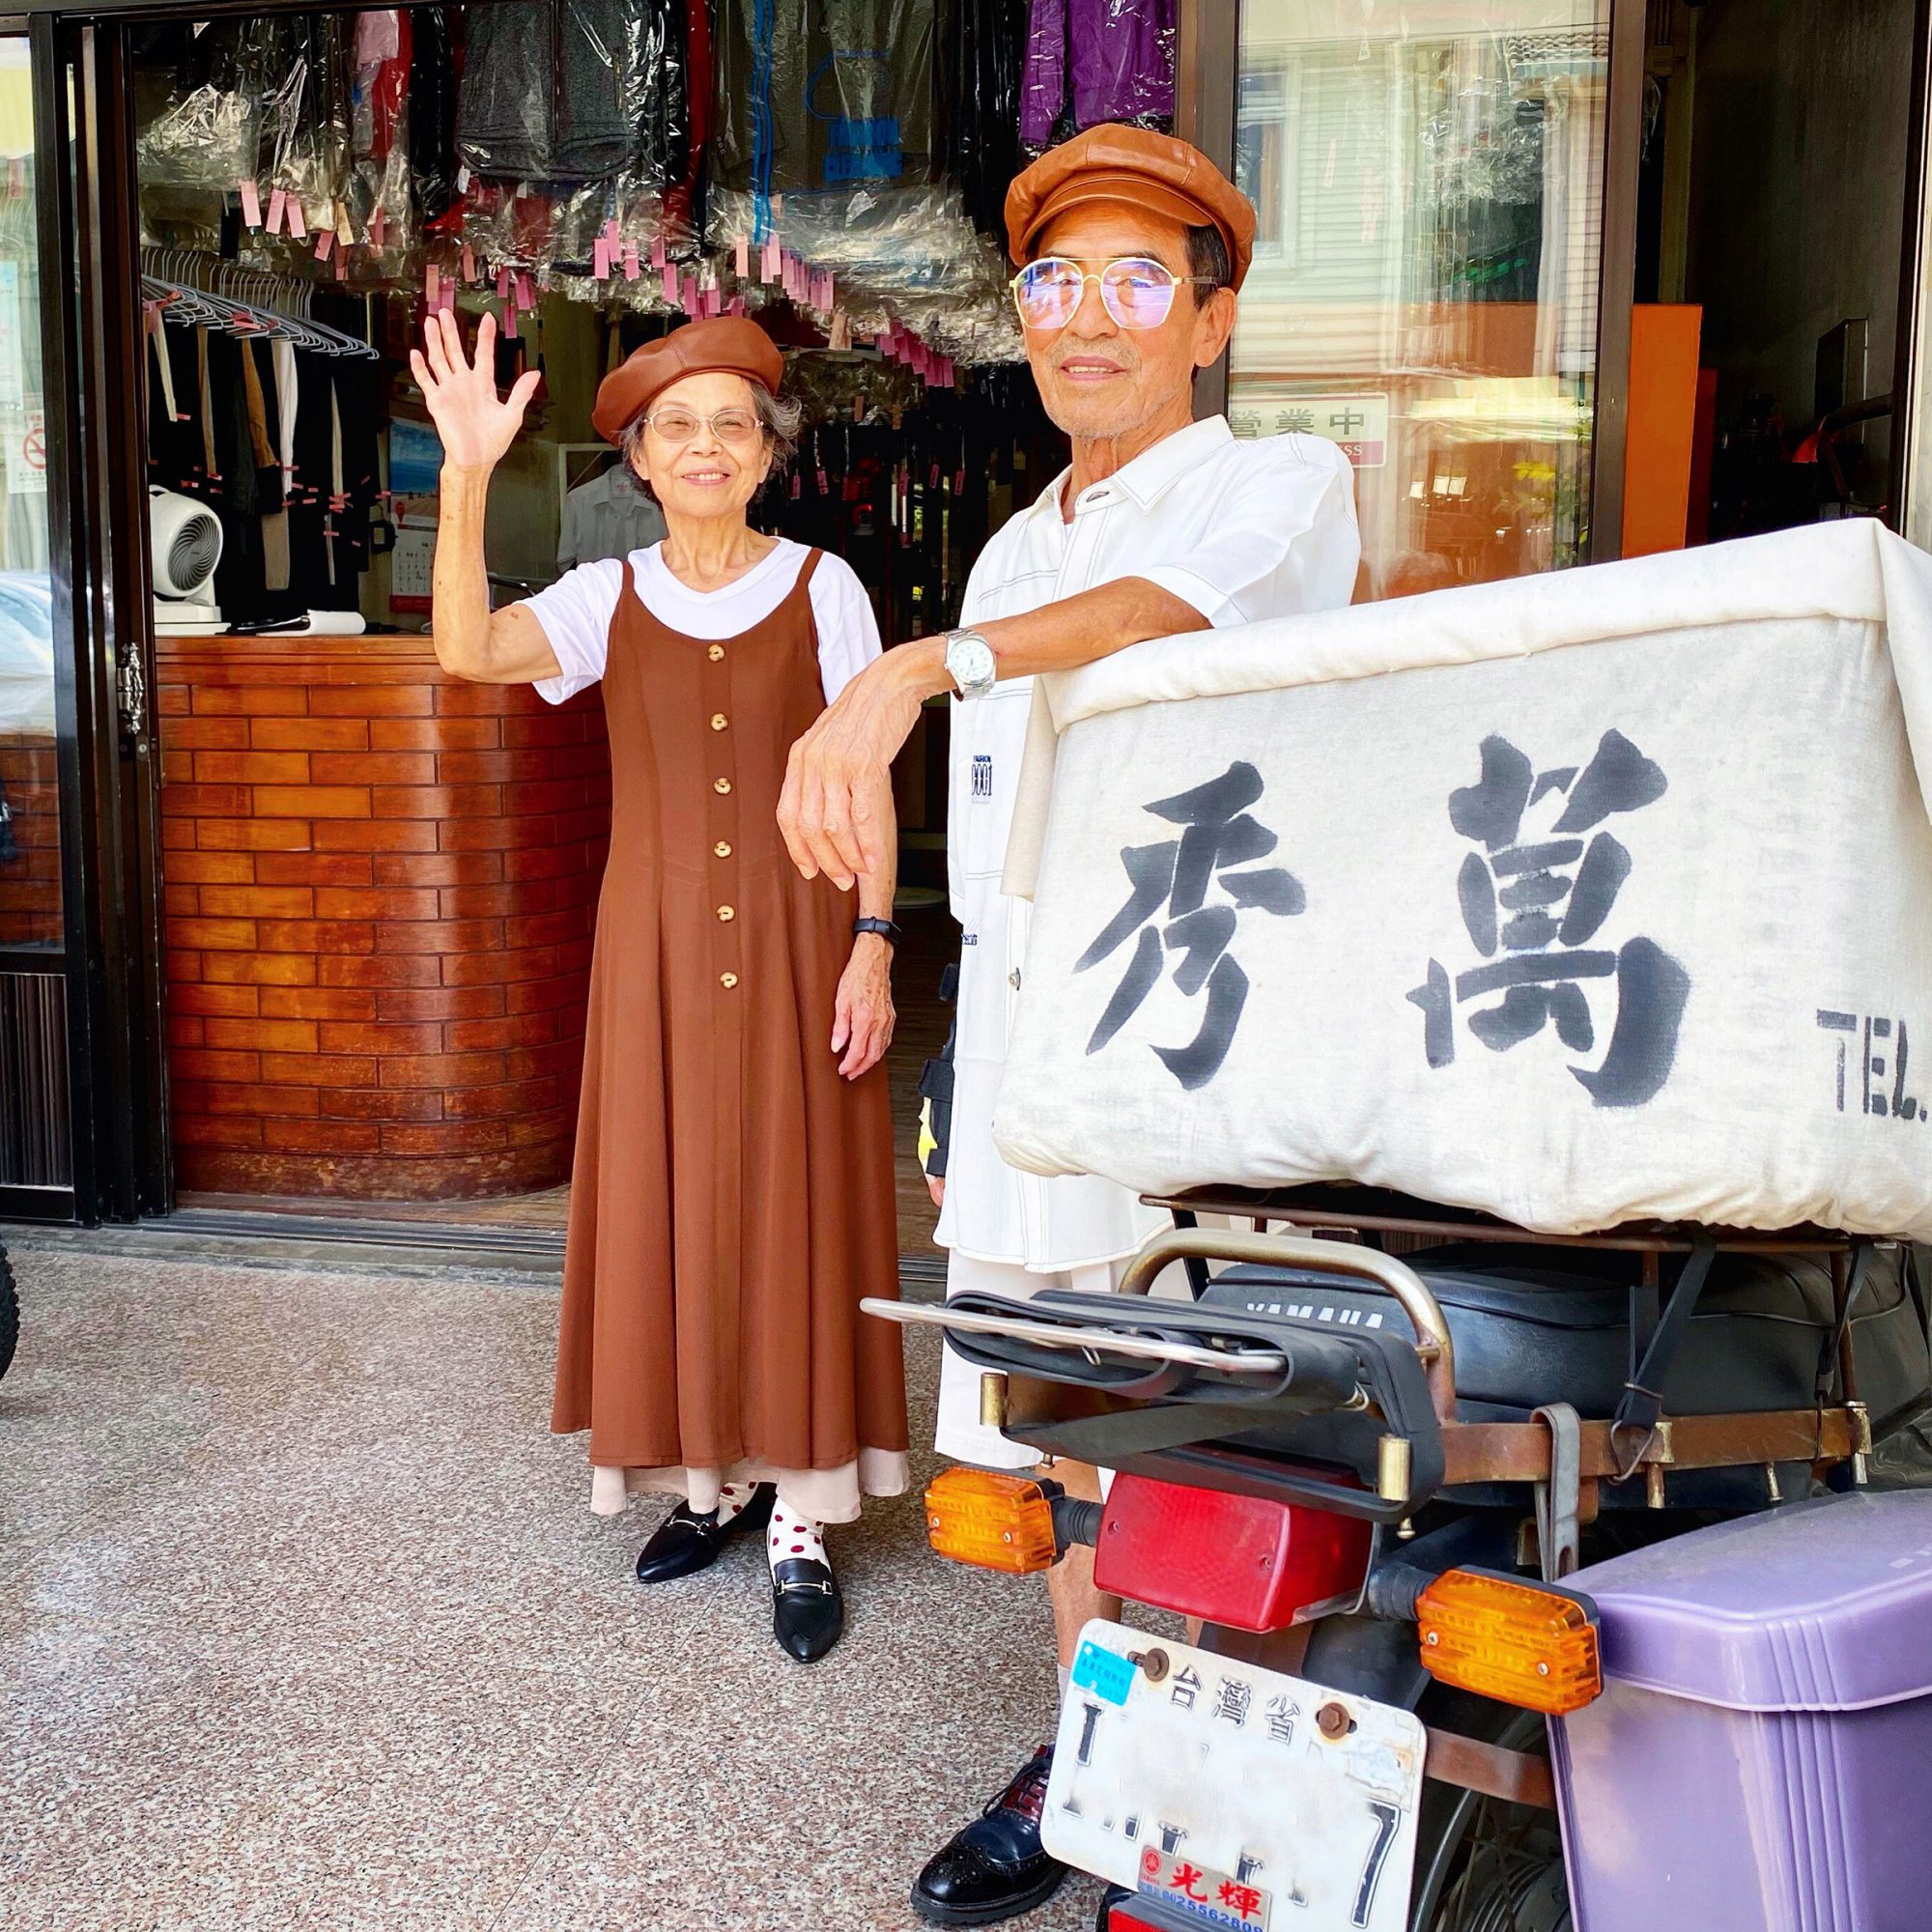 Taiwan elderly couple become IG celebrities by modeling leftover clothes in laundry, Taichung - 14 Jun 2020